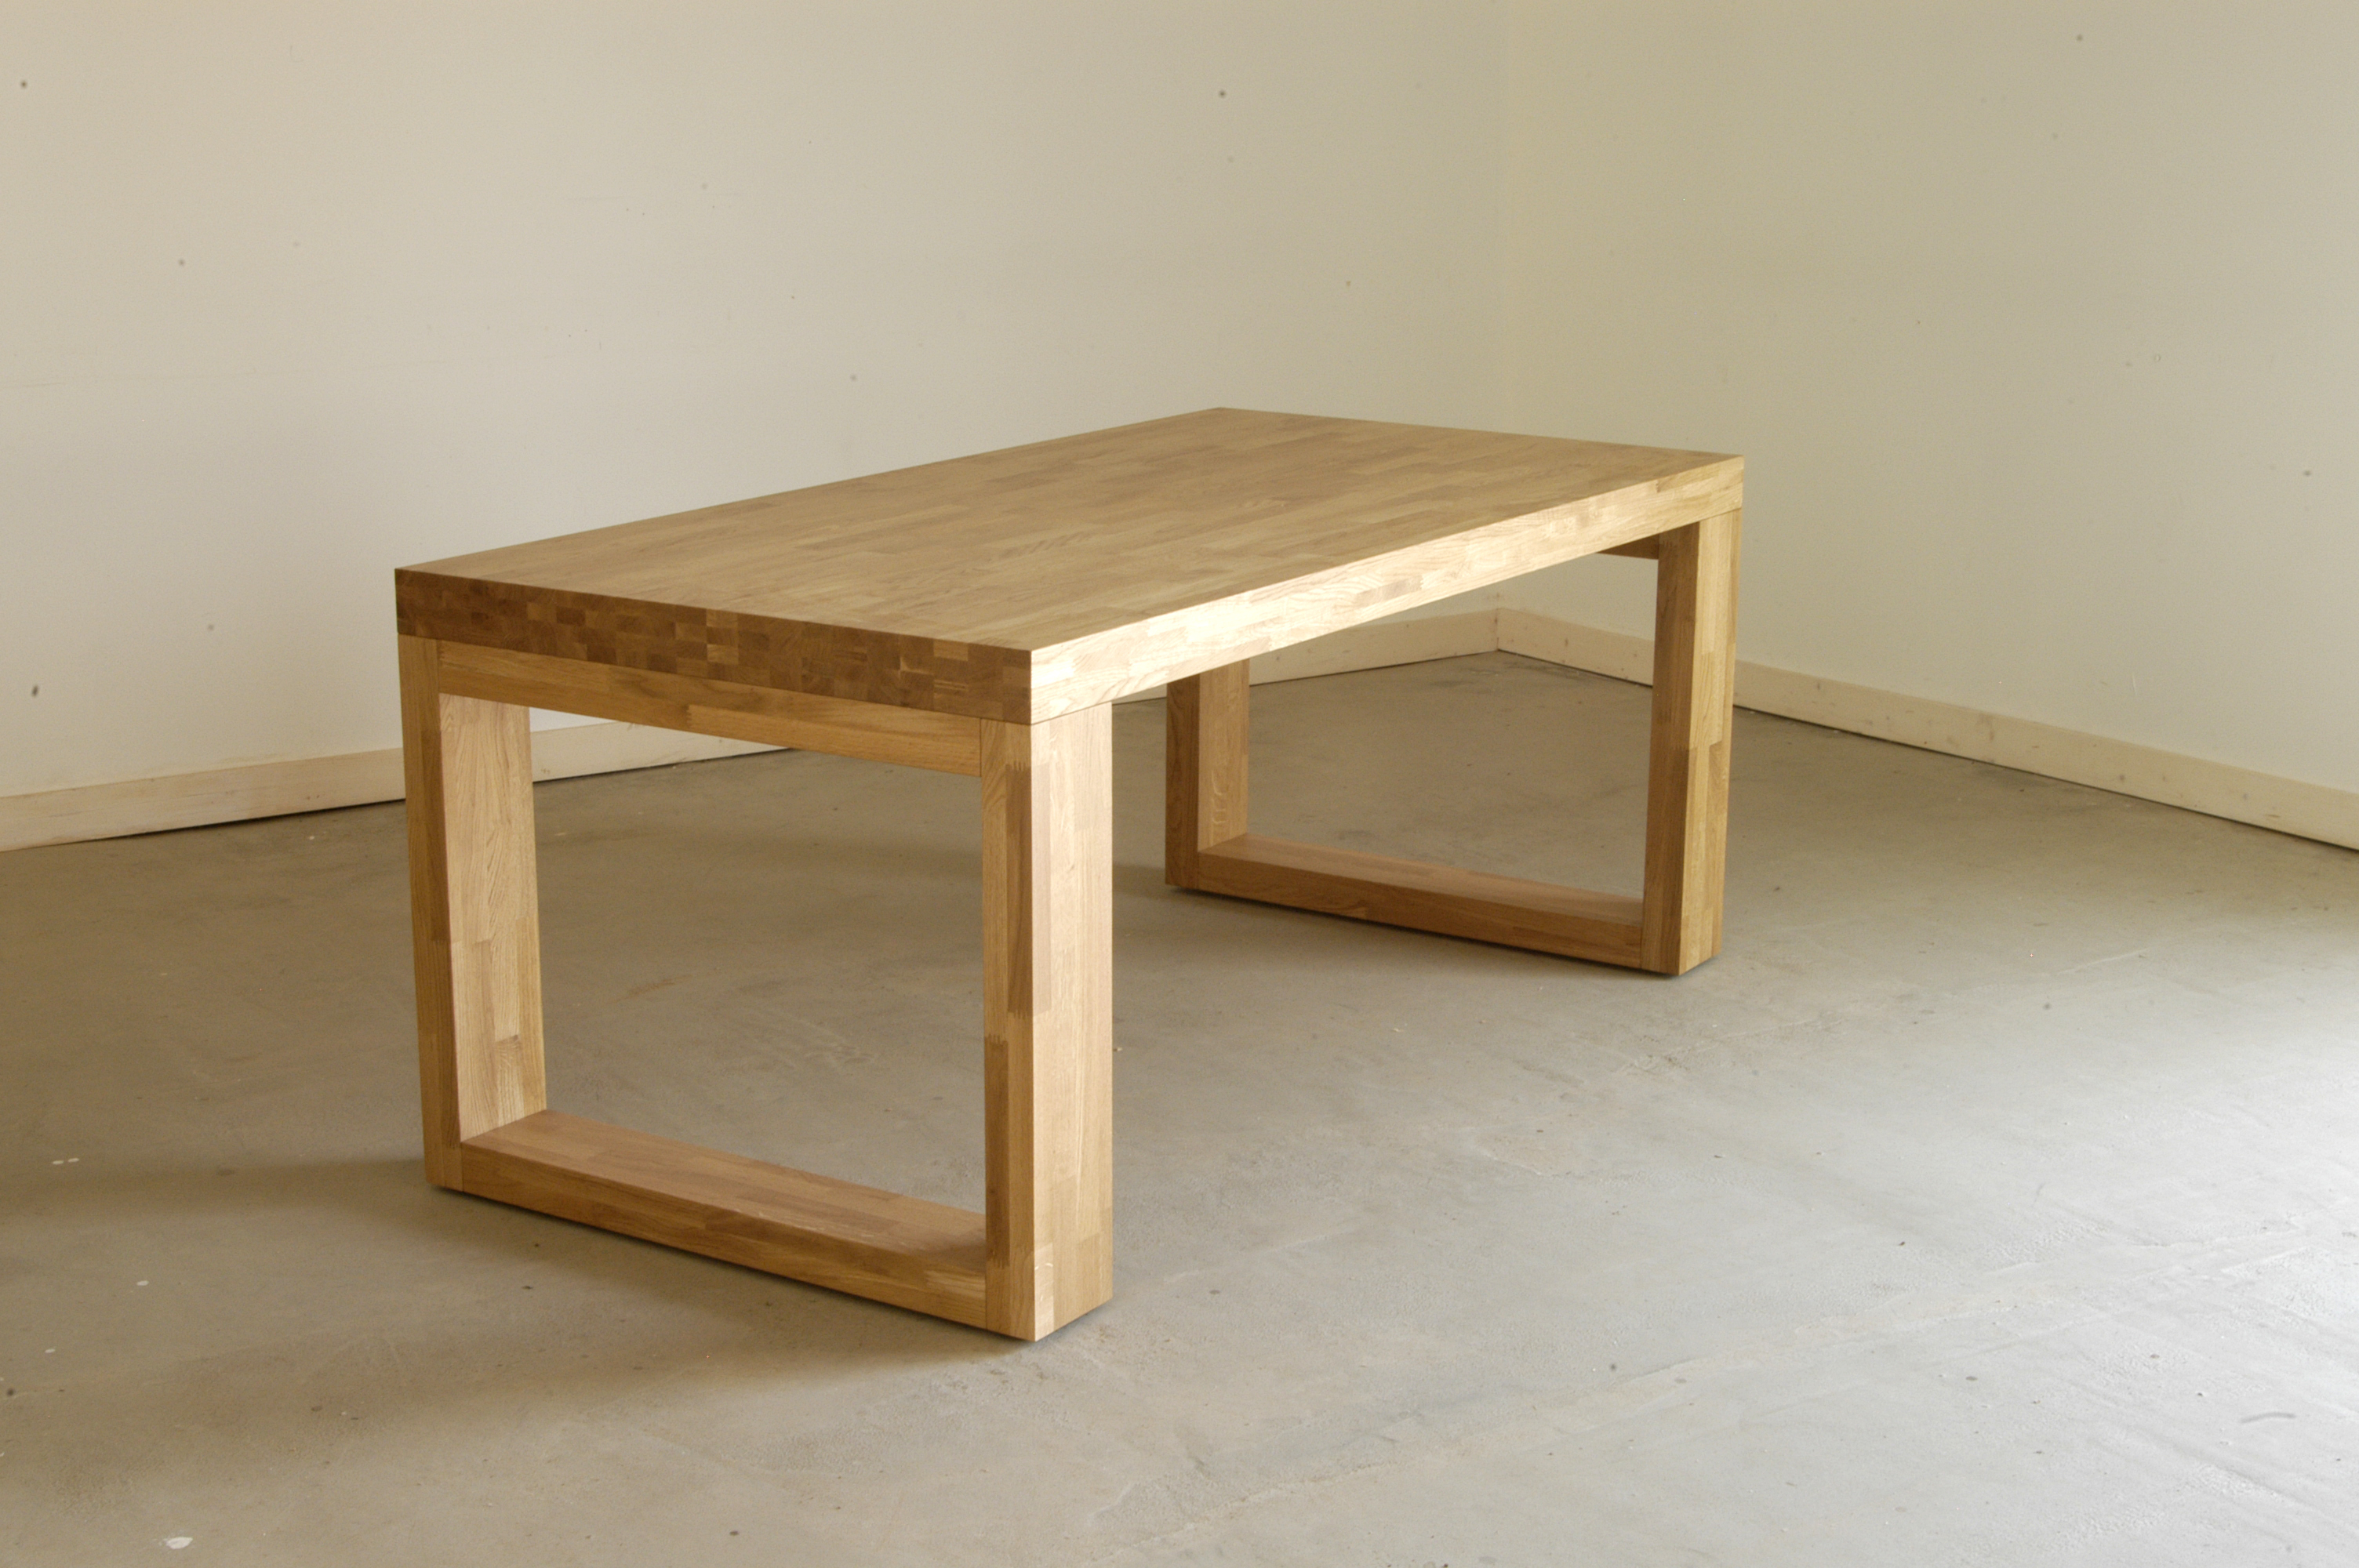 Table bois massif design id es de for Table exterieur en bois massif